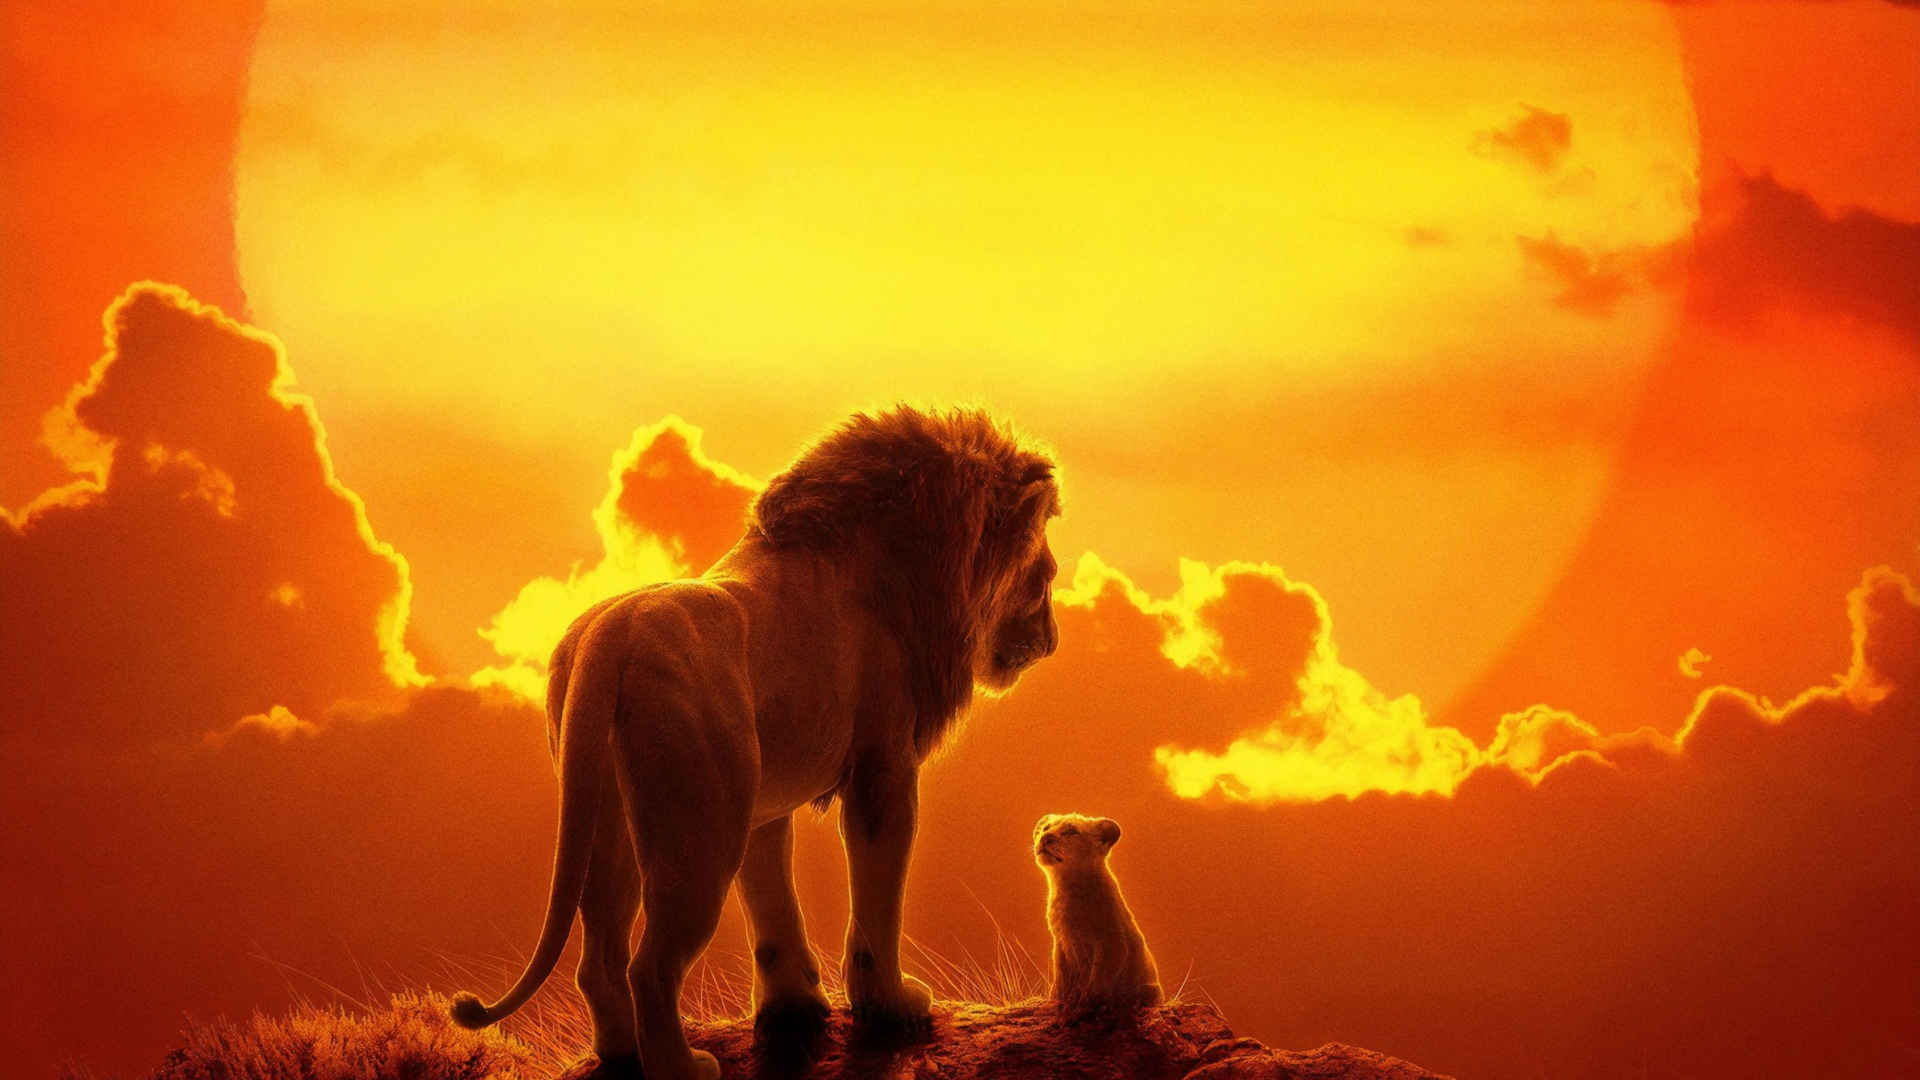 Download 1920x1080 Wallpaper The Lion King Lion And Cub